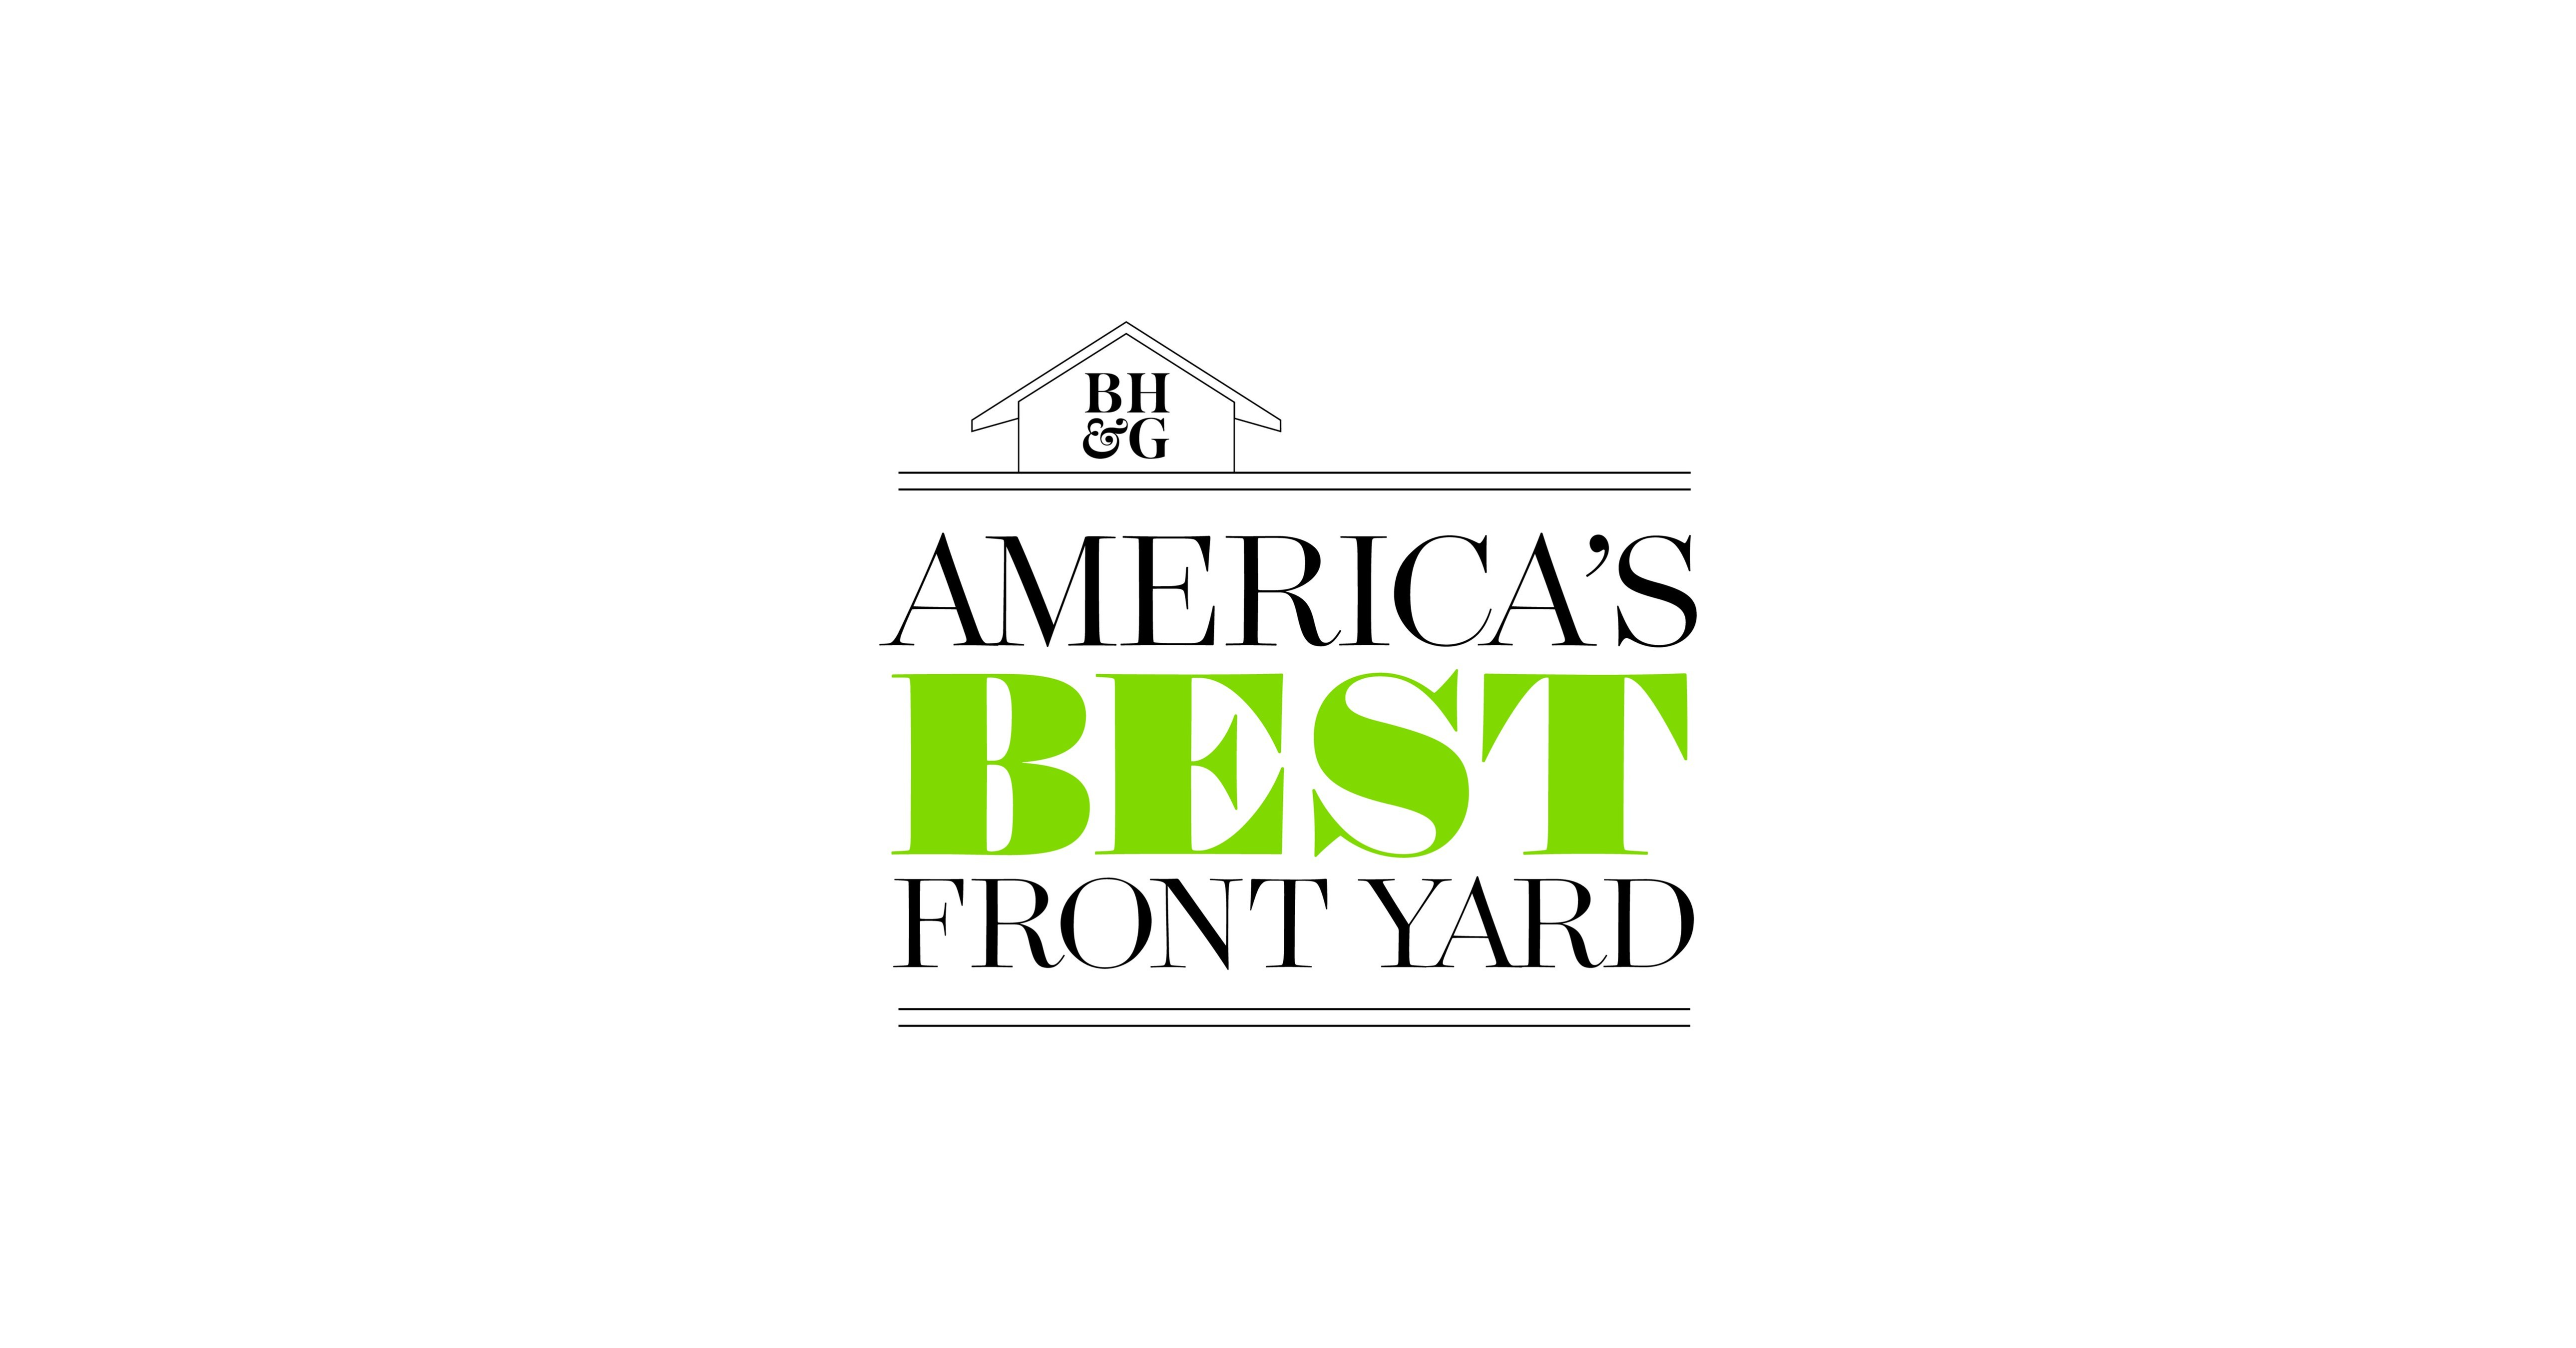 Better Homes & Gardens Announces America's Best Front Yard ...